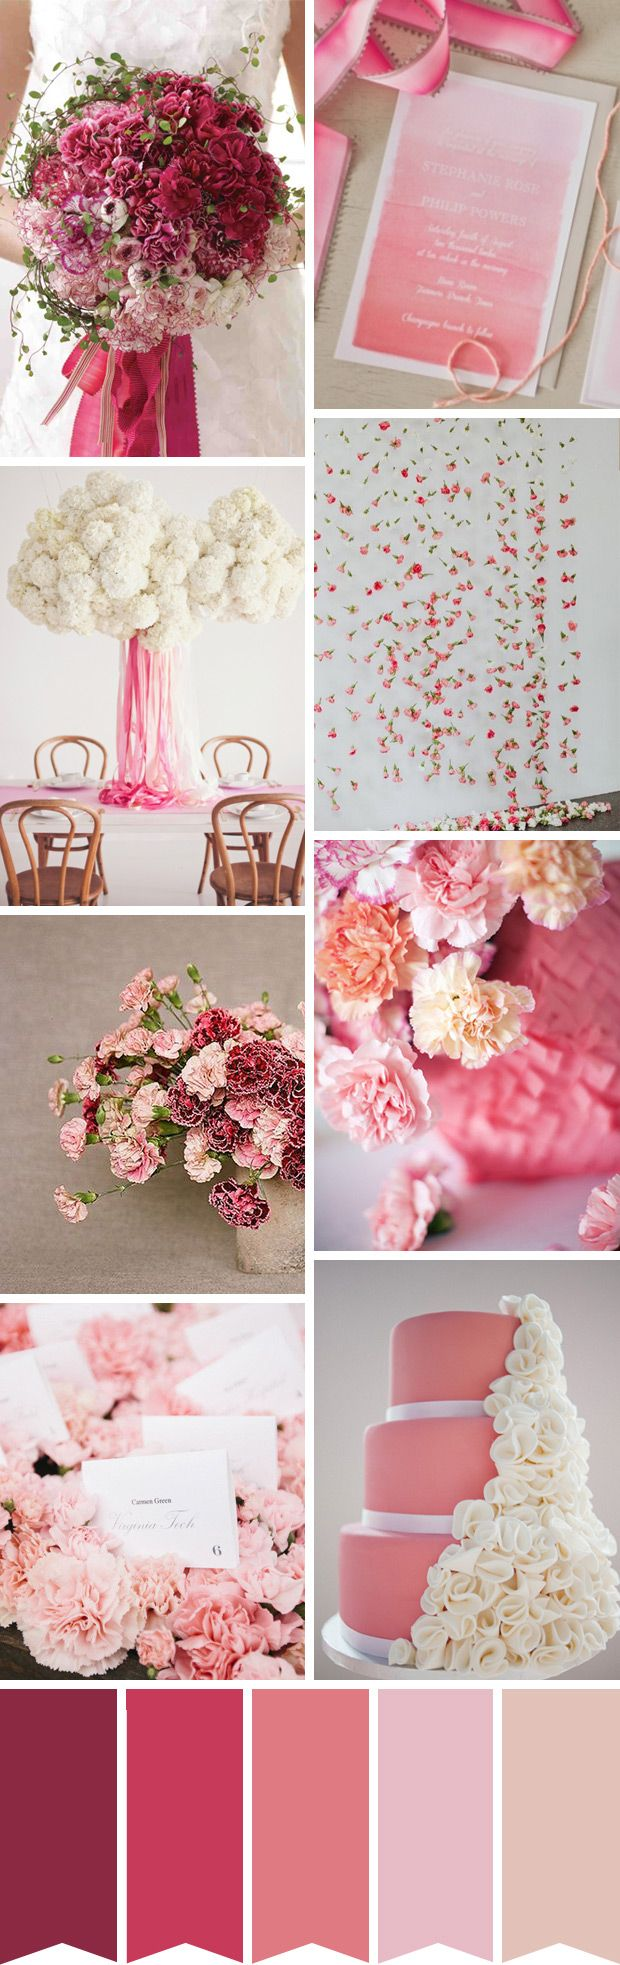 Pink Carnation Inspired Wedding Palette | see how to create this look on www.onefabday.com